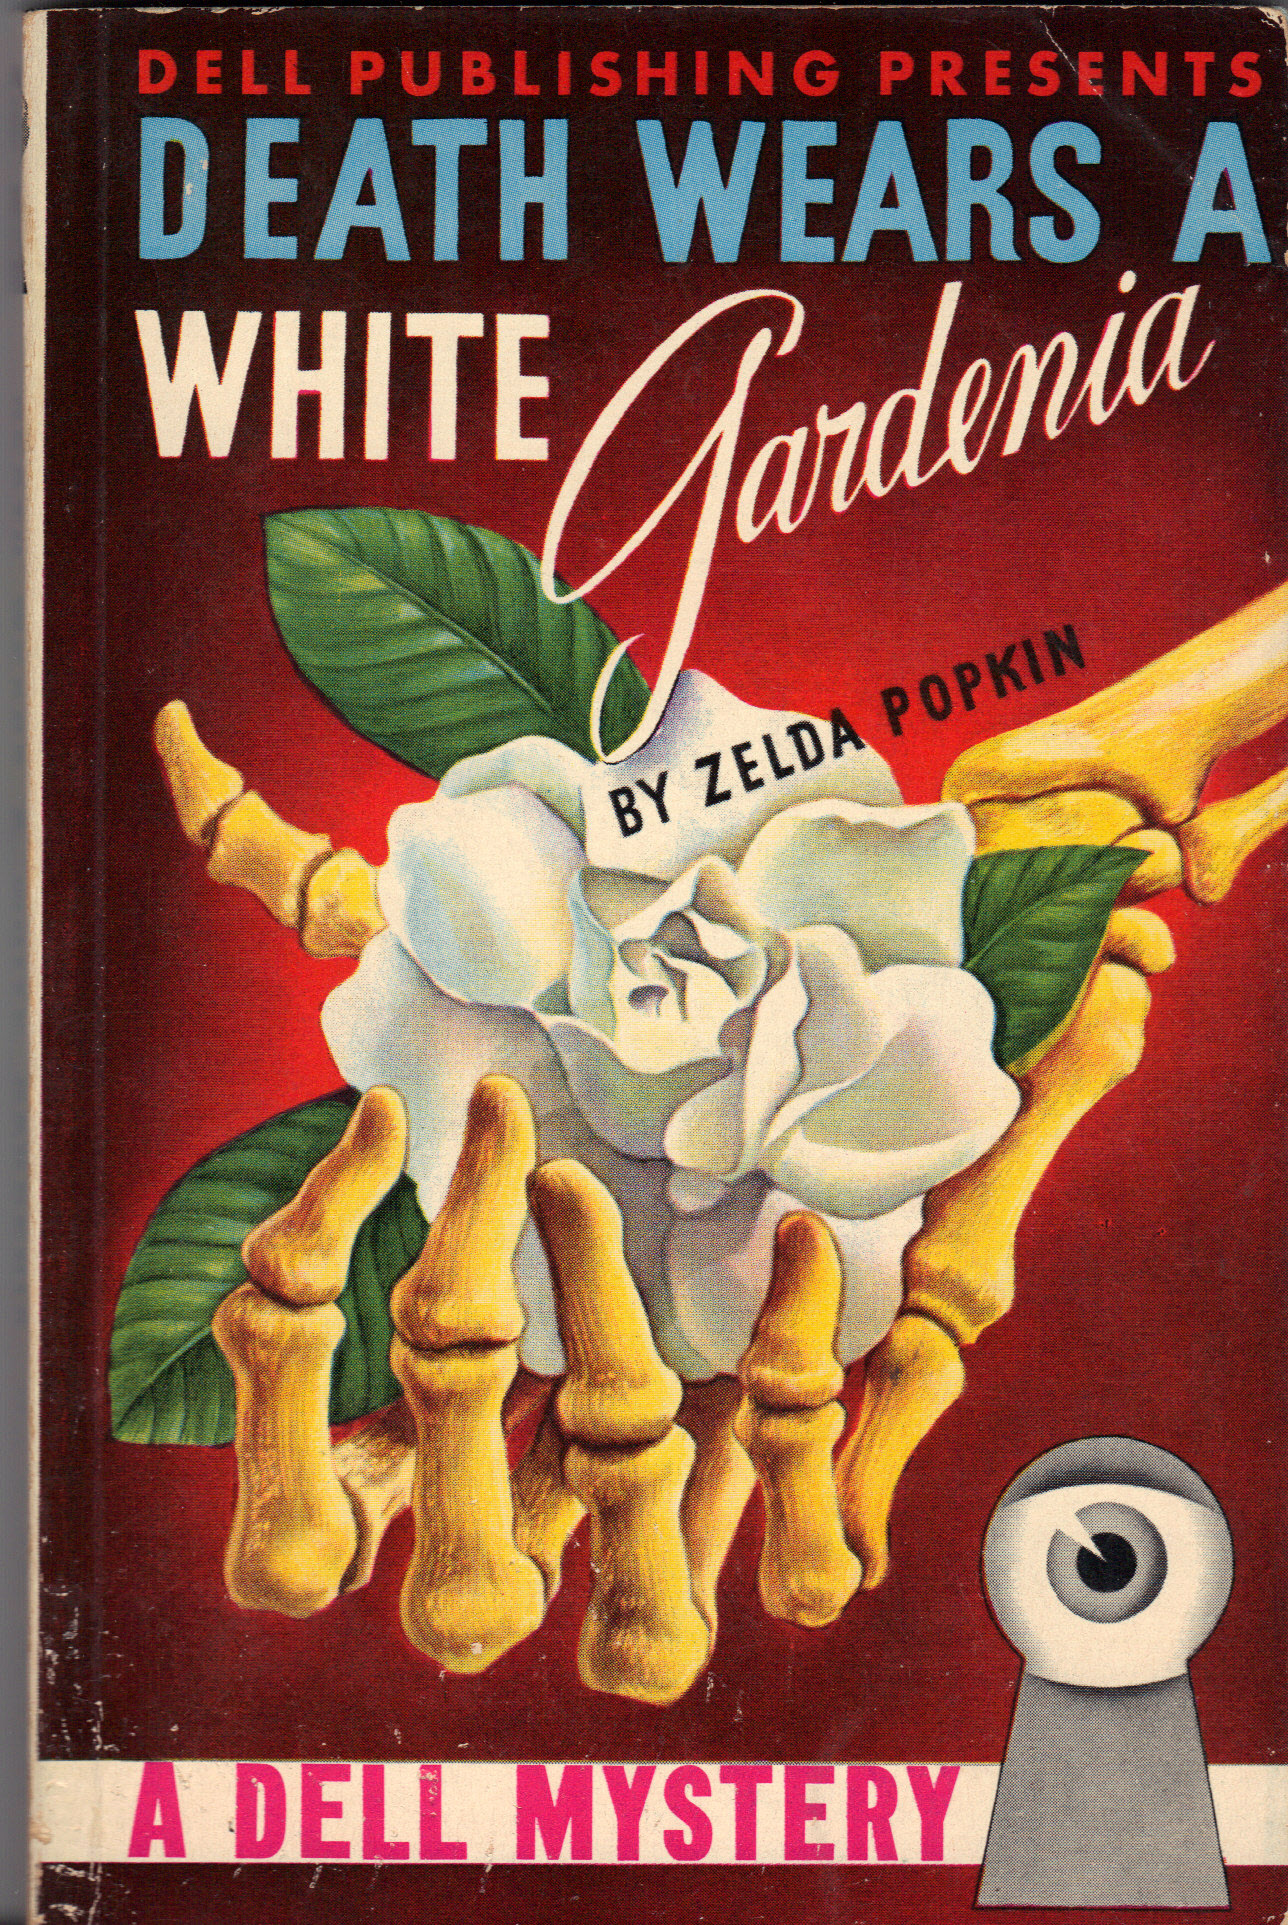 Image for DEATH WEARS A WHITE GARDENIA